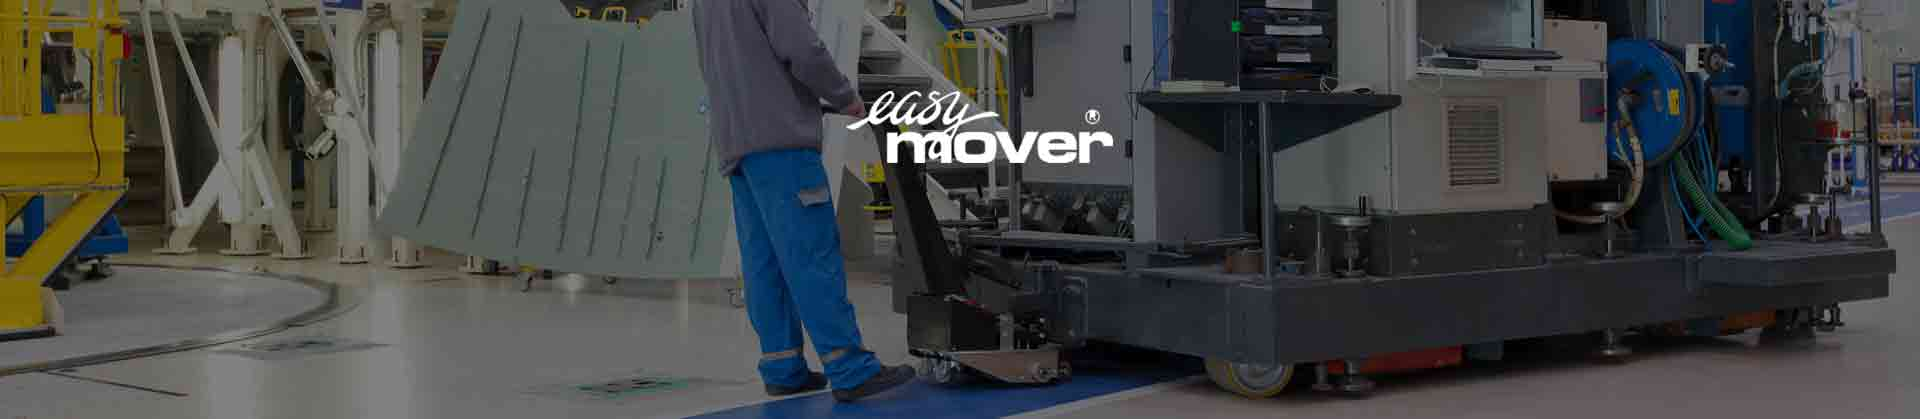 Easy mover